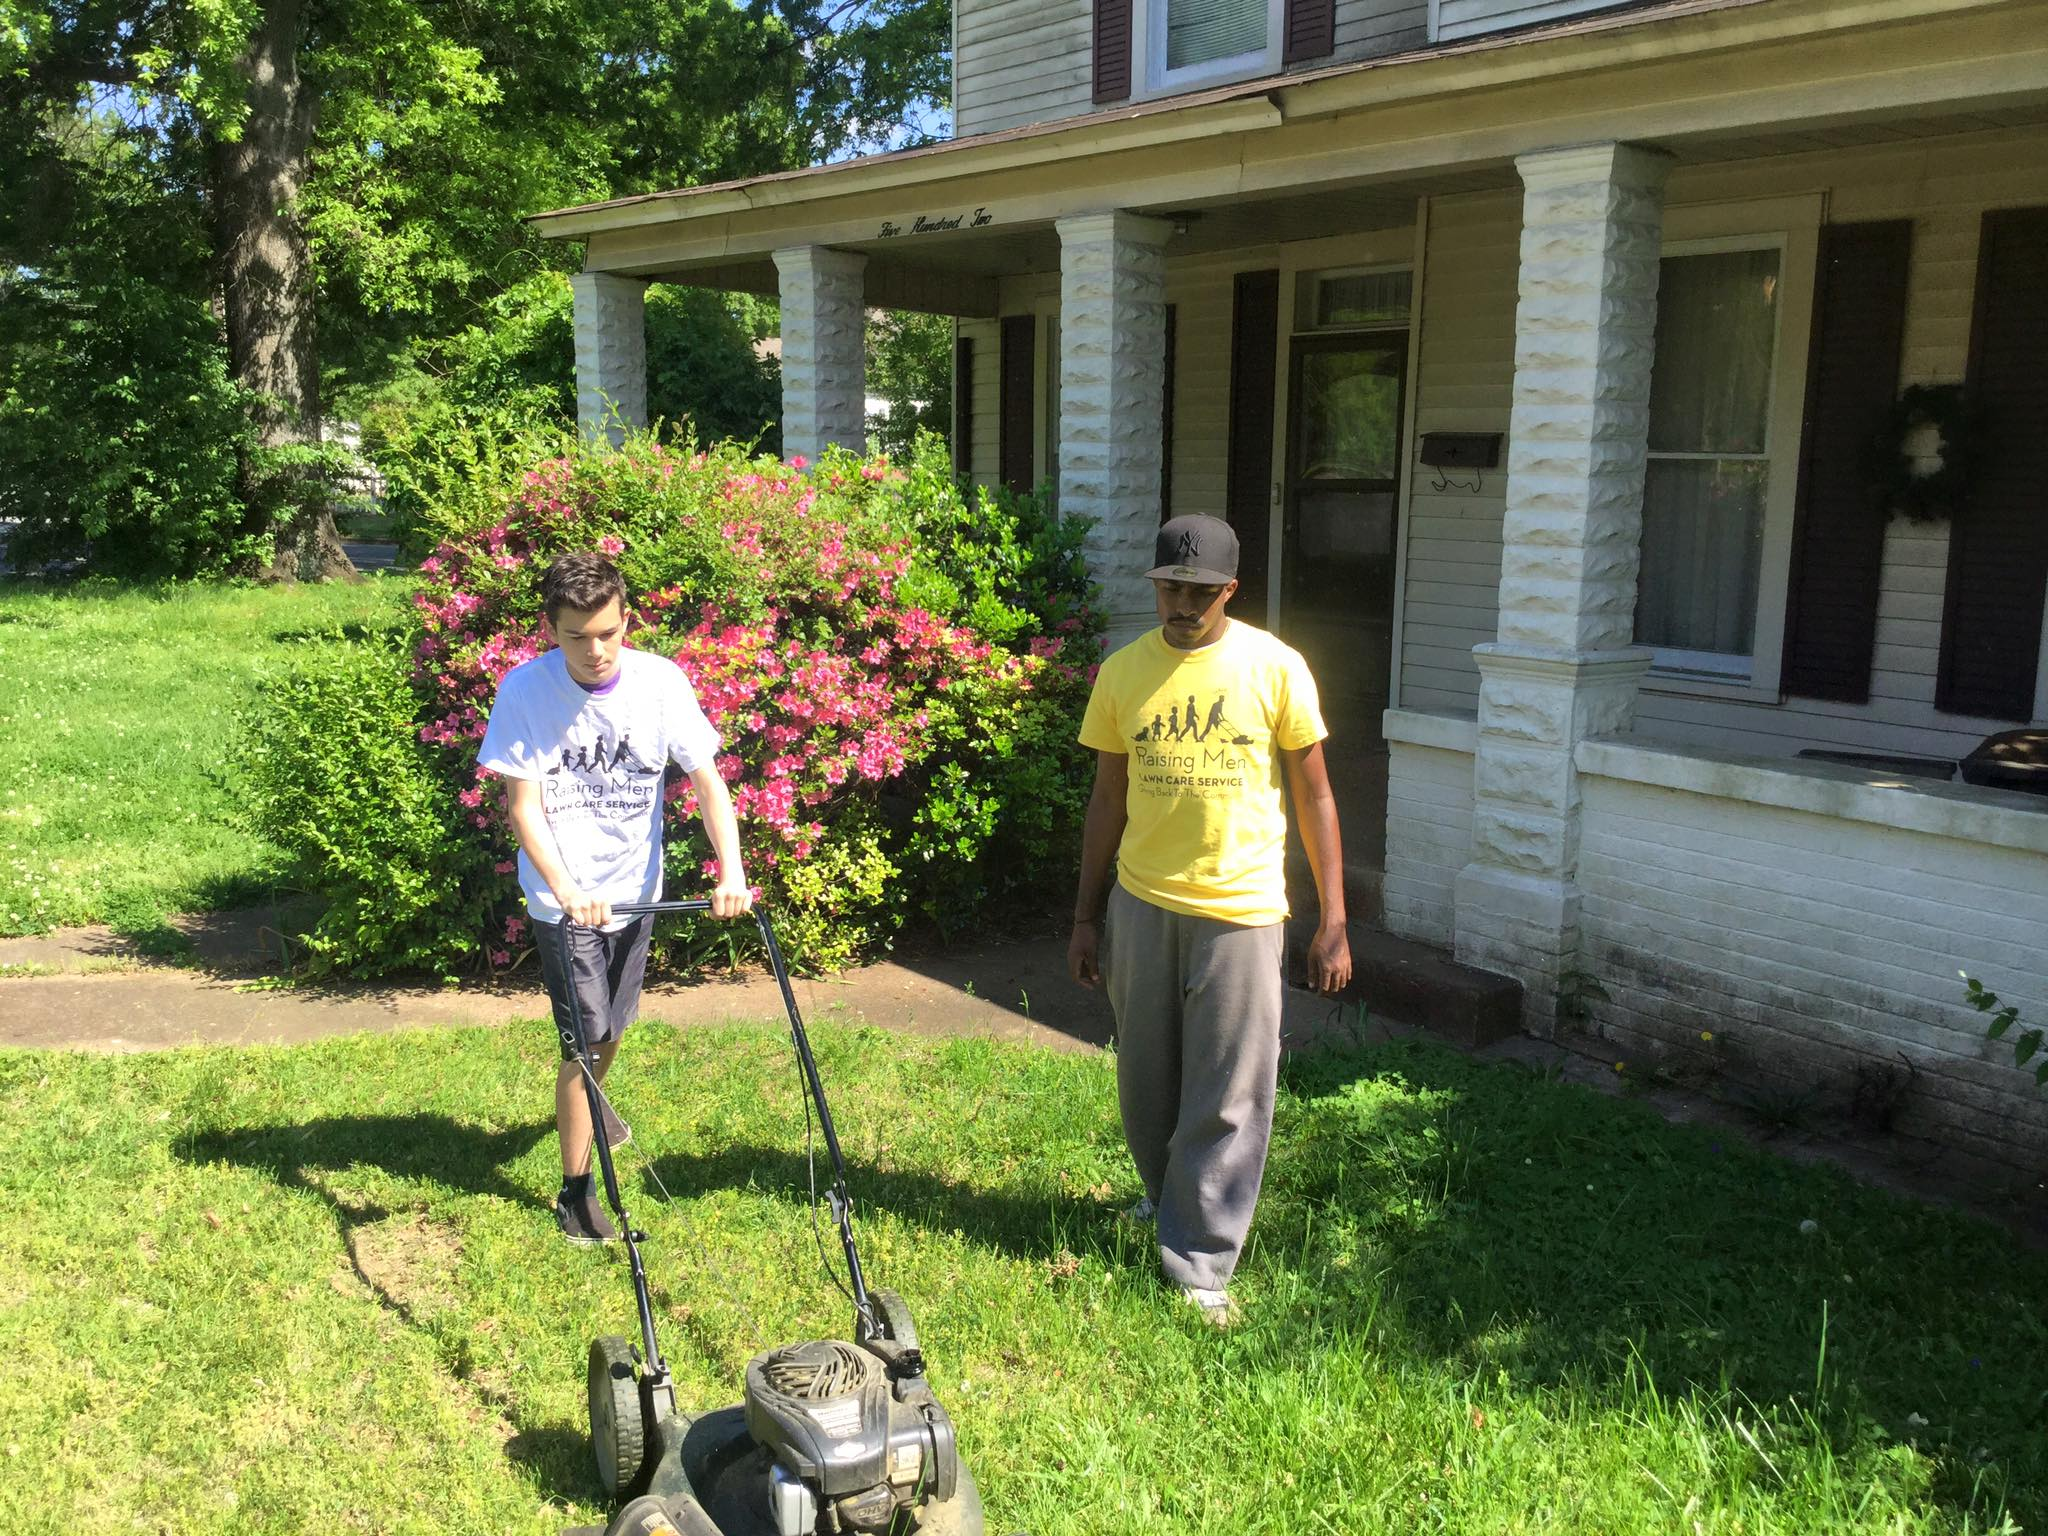 These lawn guys only cut lawns for those who can't